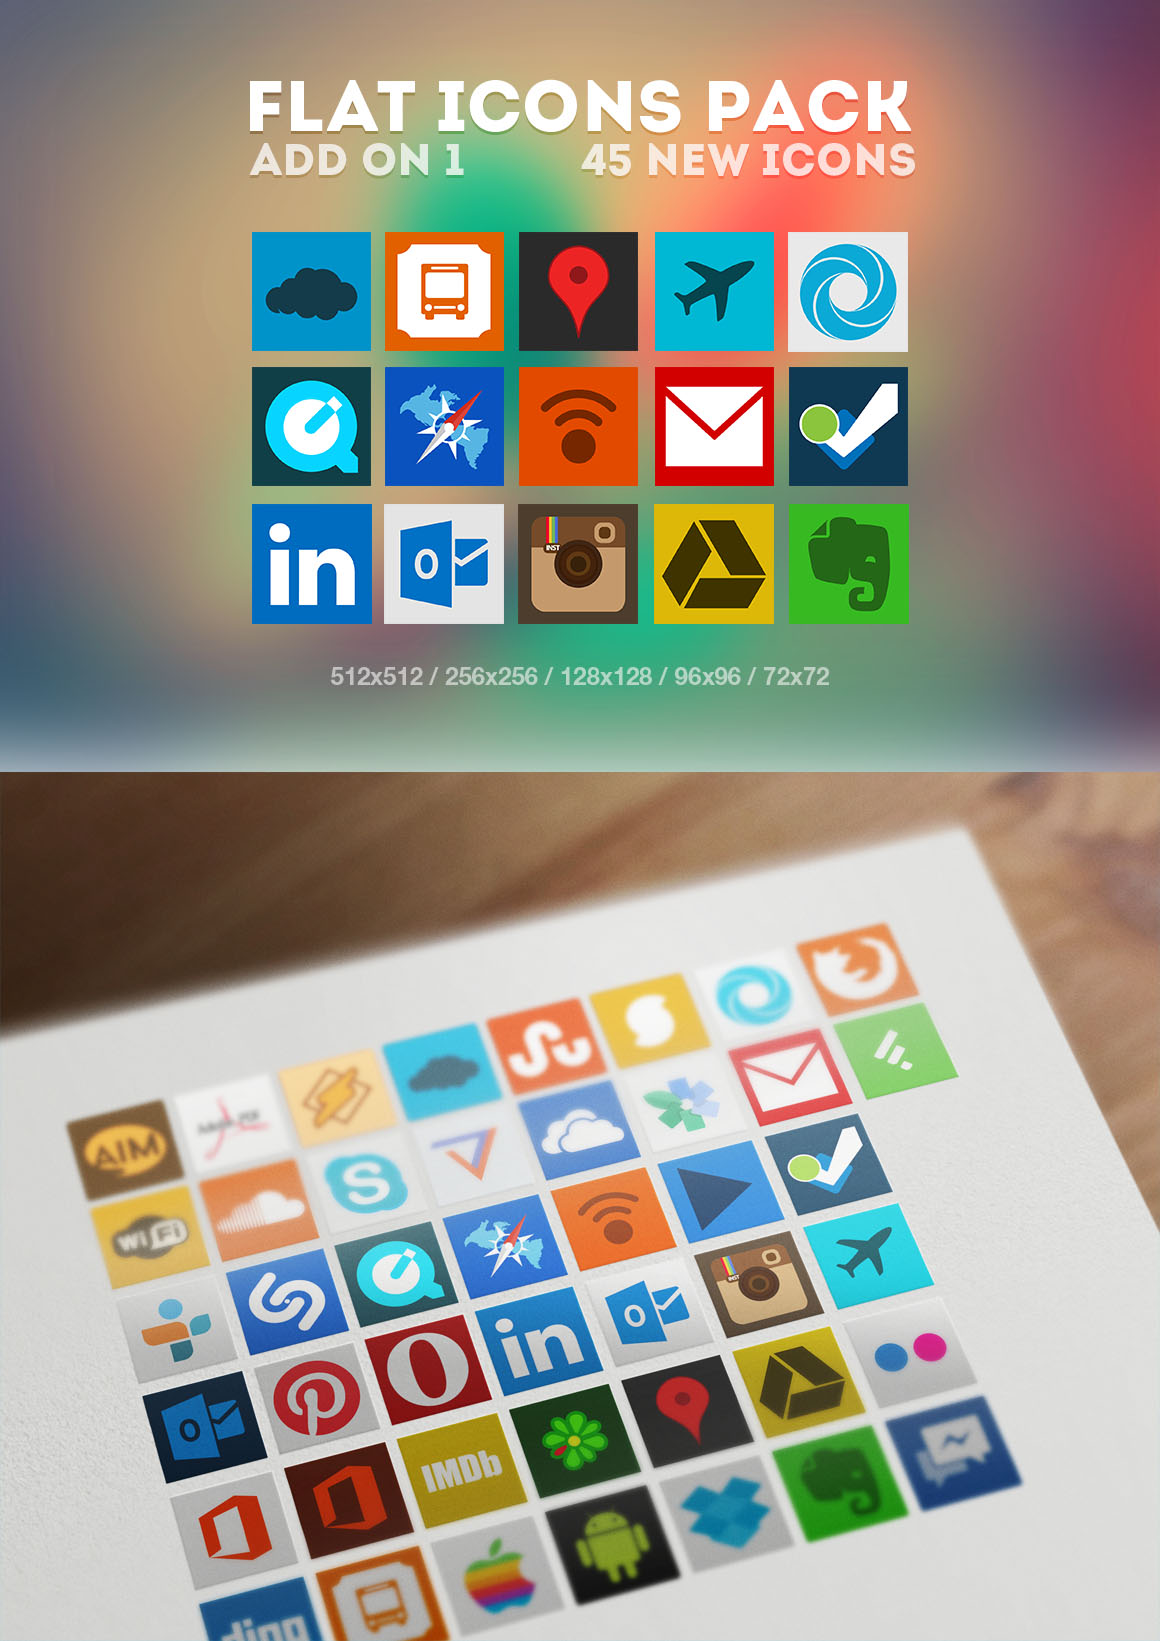 Flat Icons Pack Add on 1 by Martz90